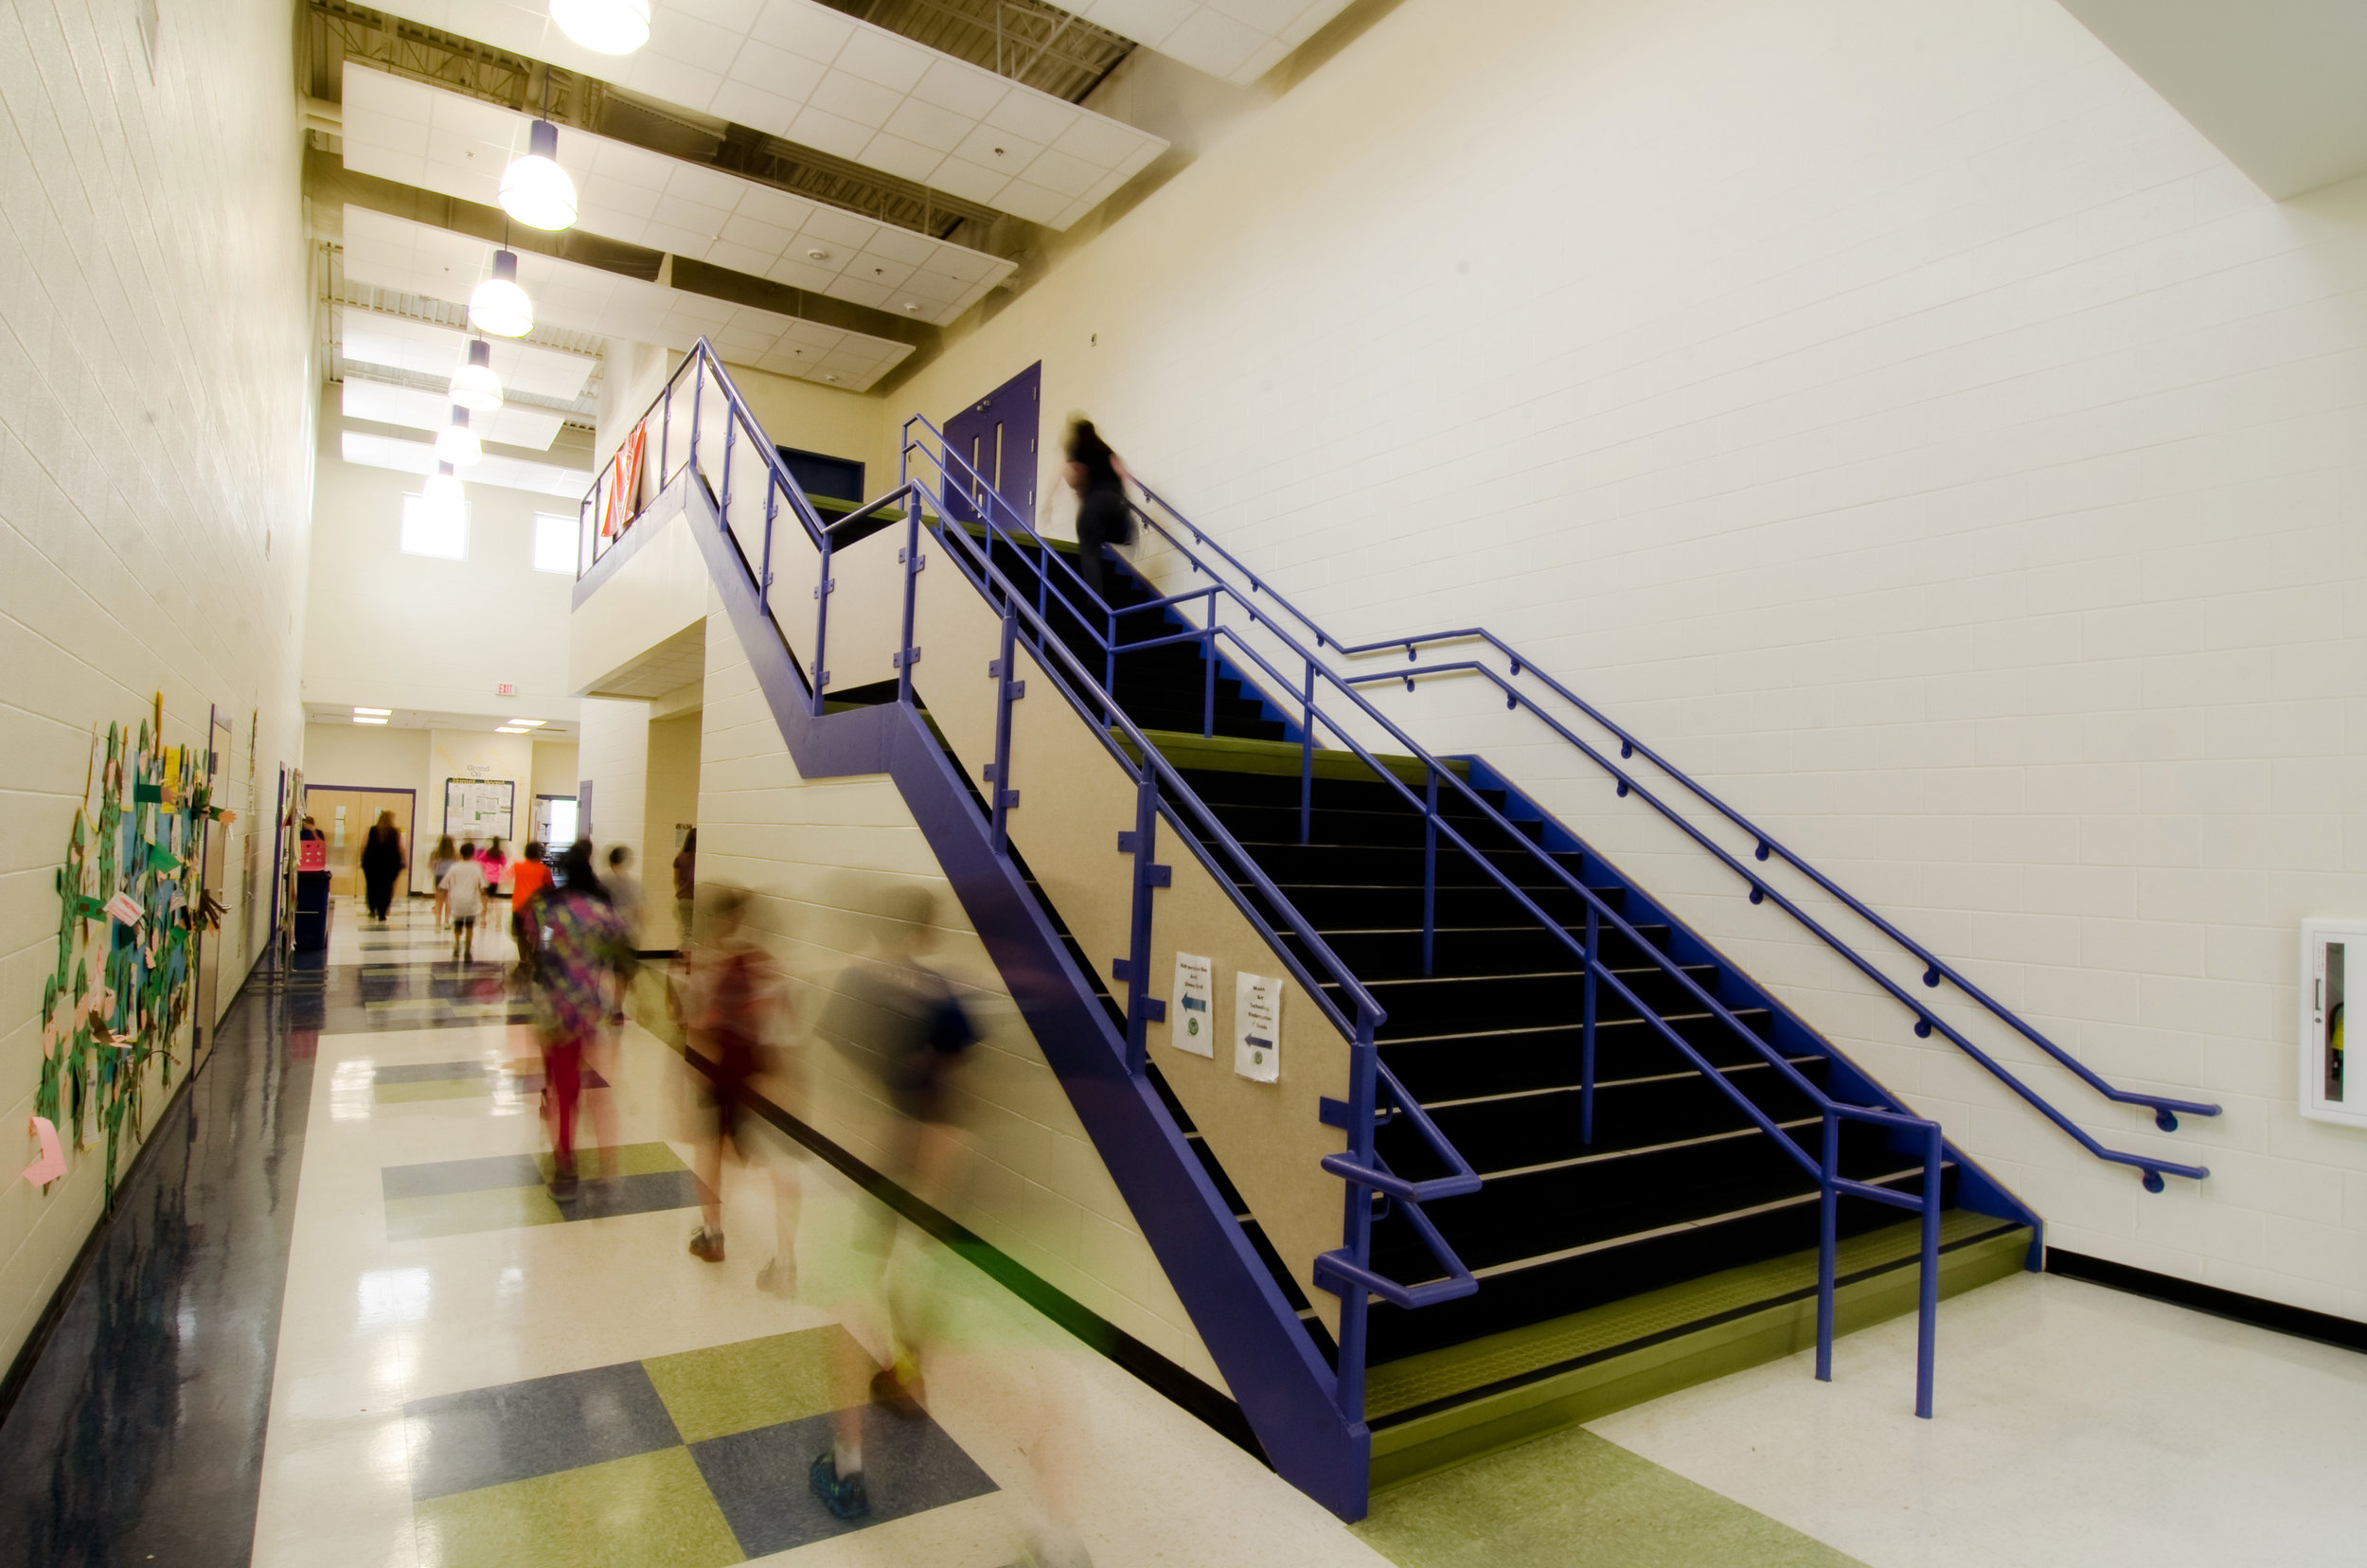 ADW-K-12-Education-Grand-Oak-Elementary-School-Huntersville-NC-Corridor.jpg